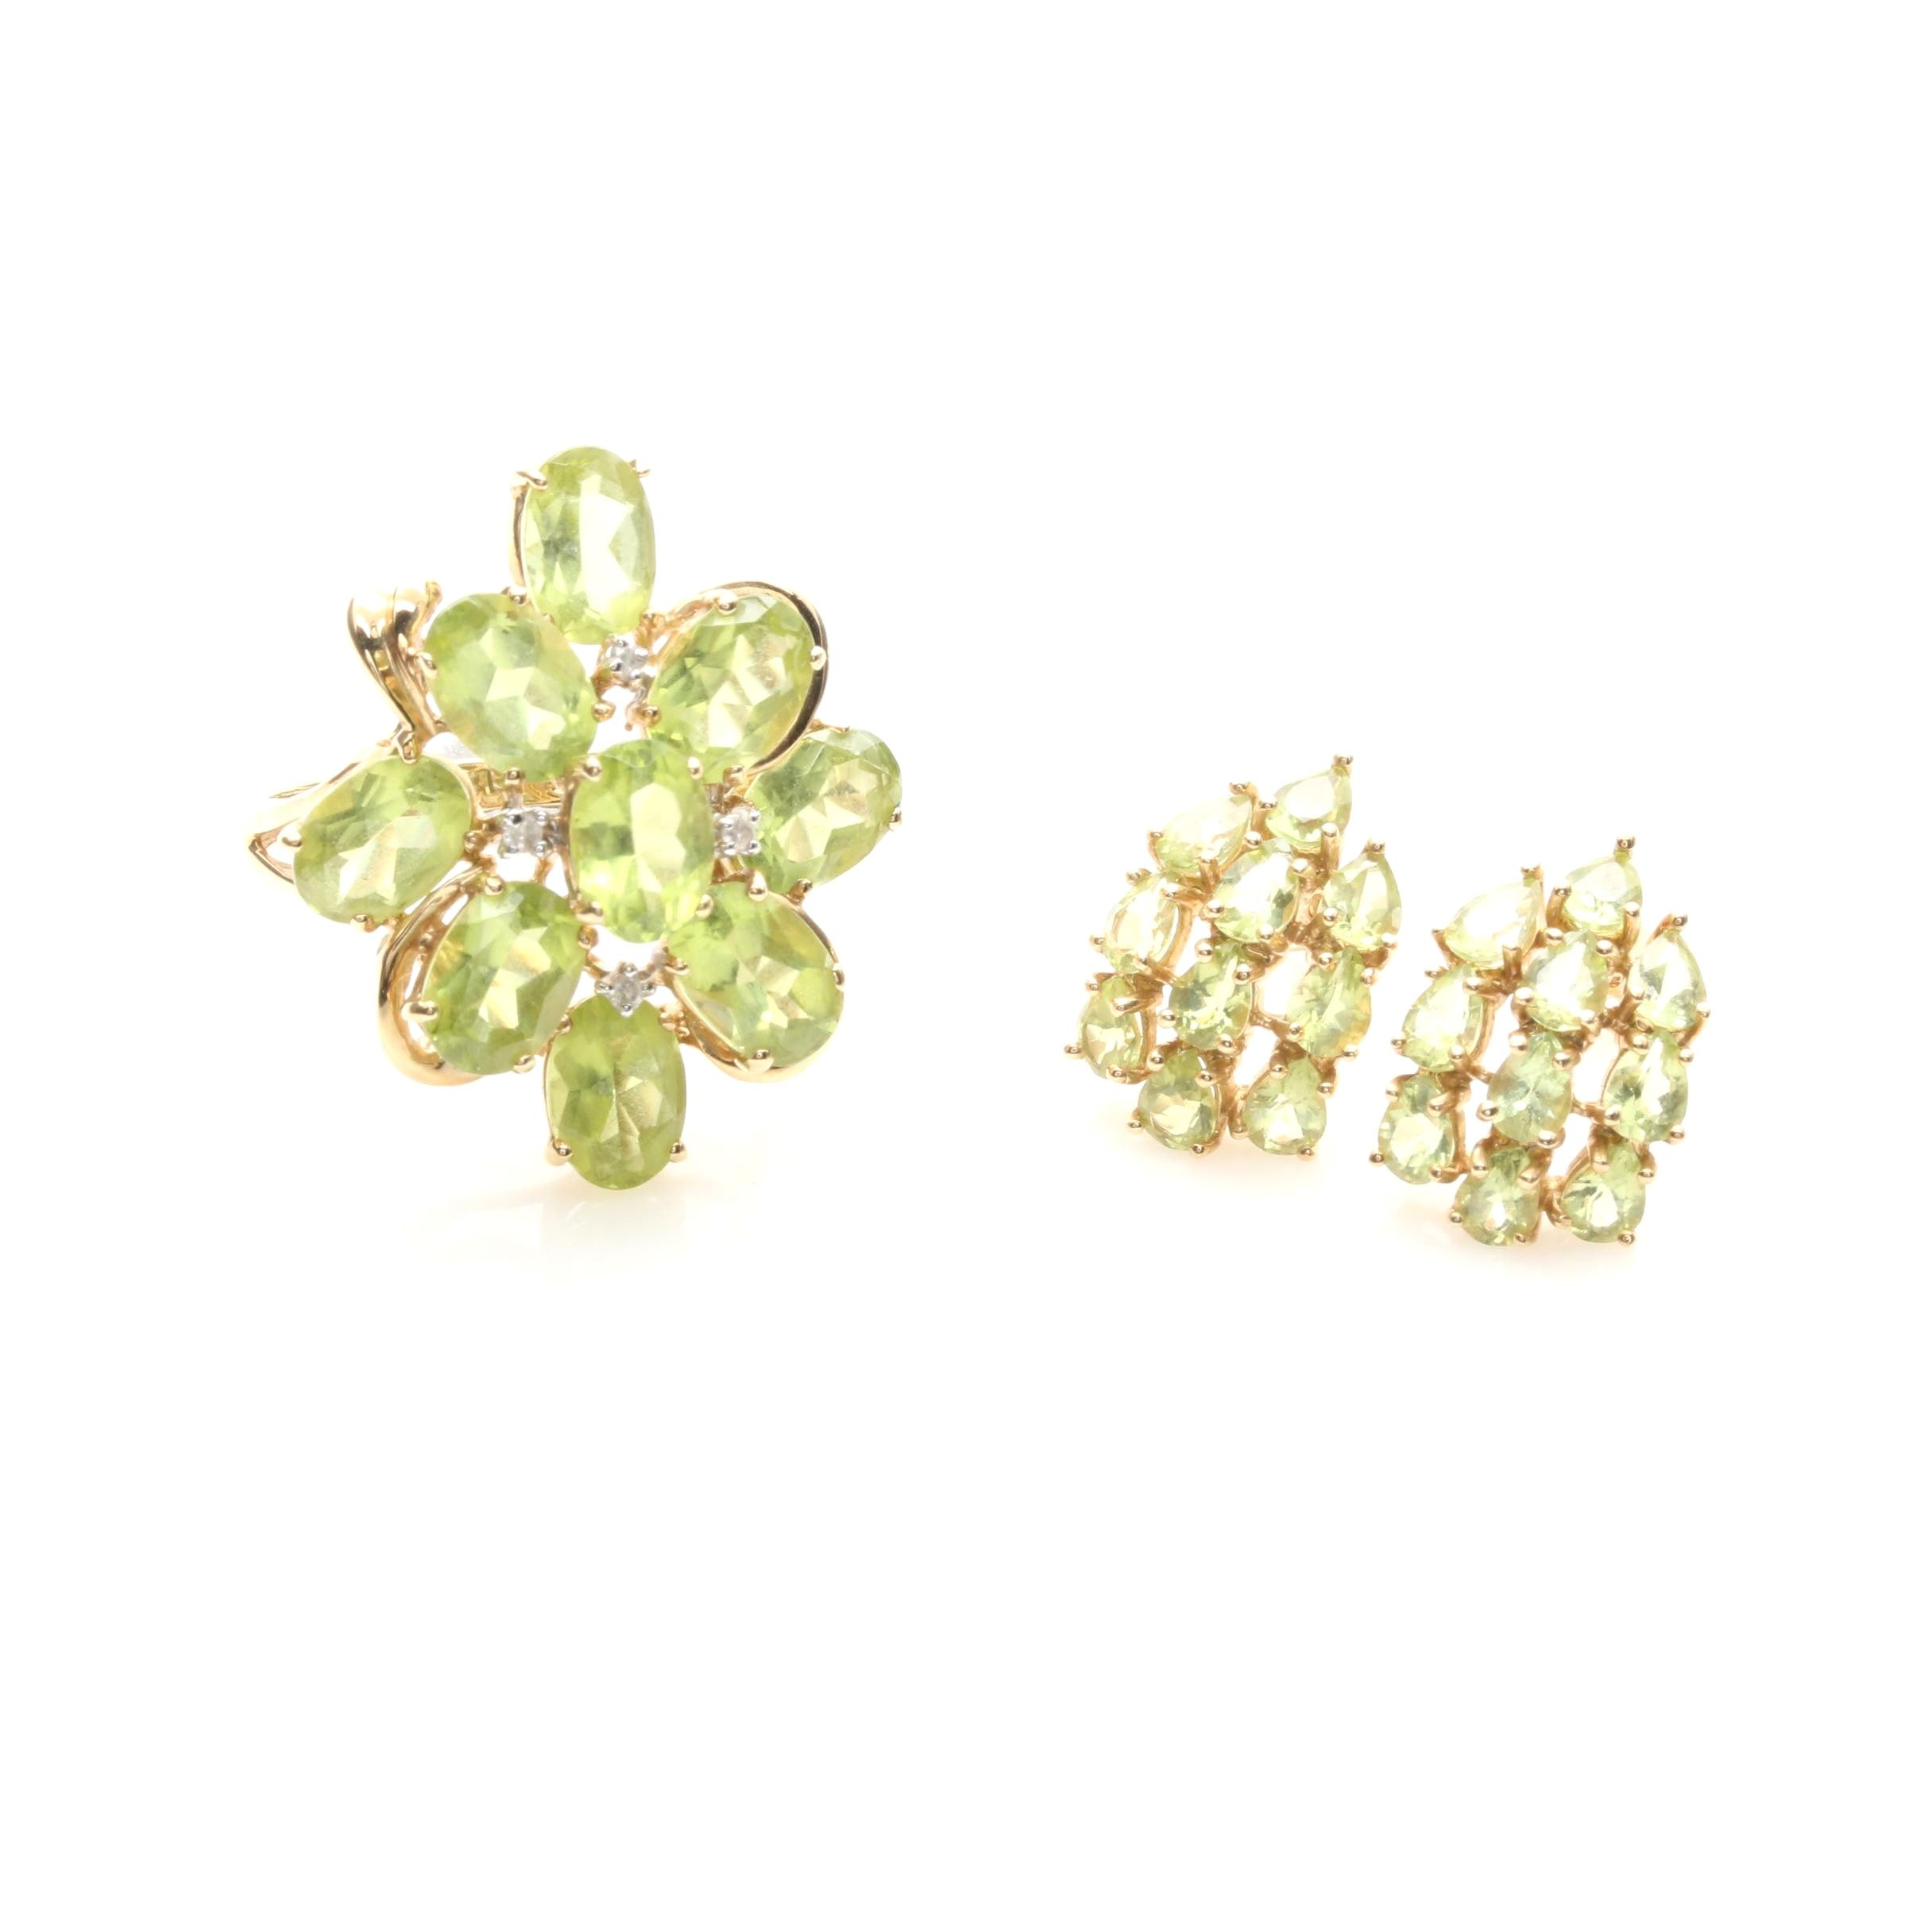 14K Yellow Gold Peridot Ring and Earrings Including Diamonds